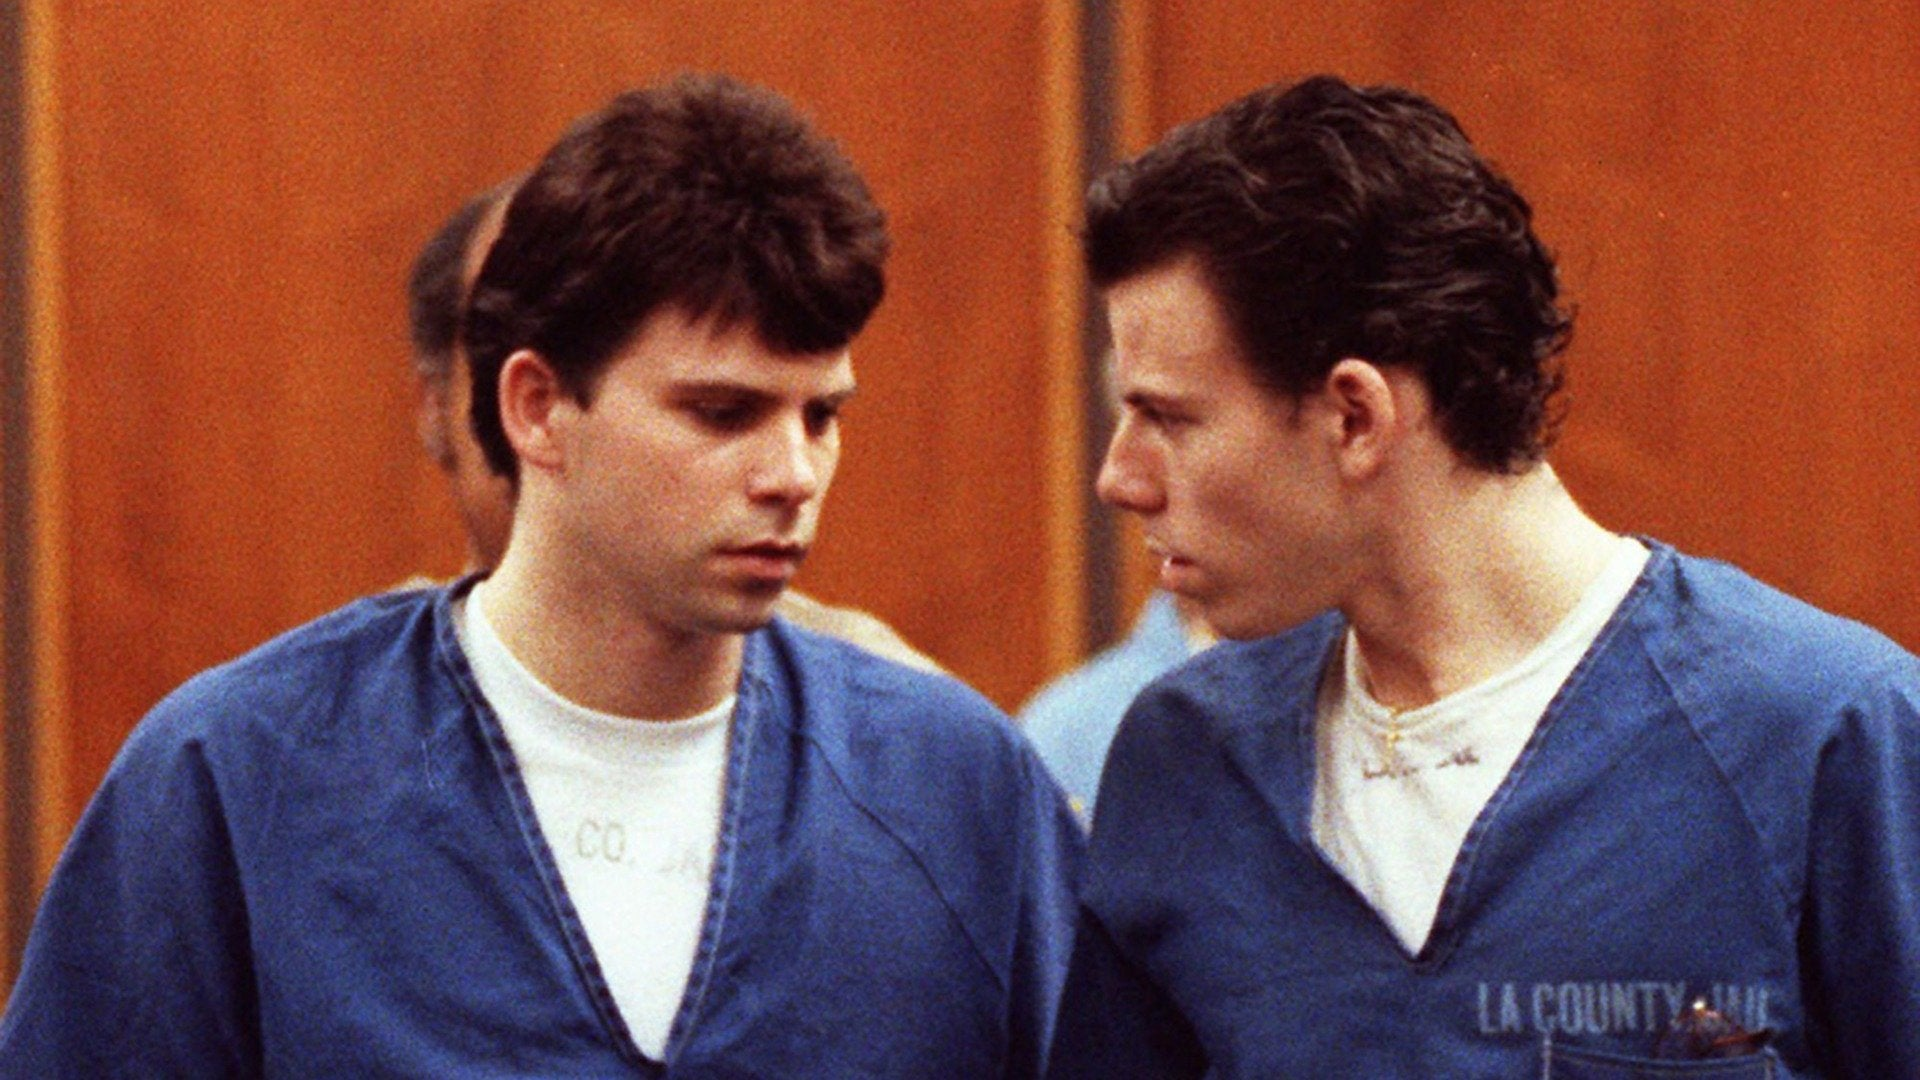 Blood Ties: The Menendez Brothers